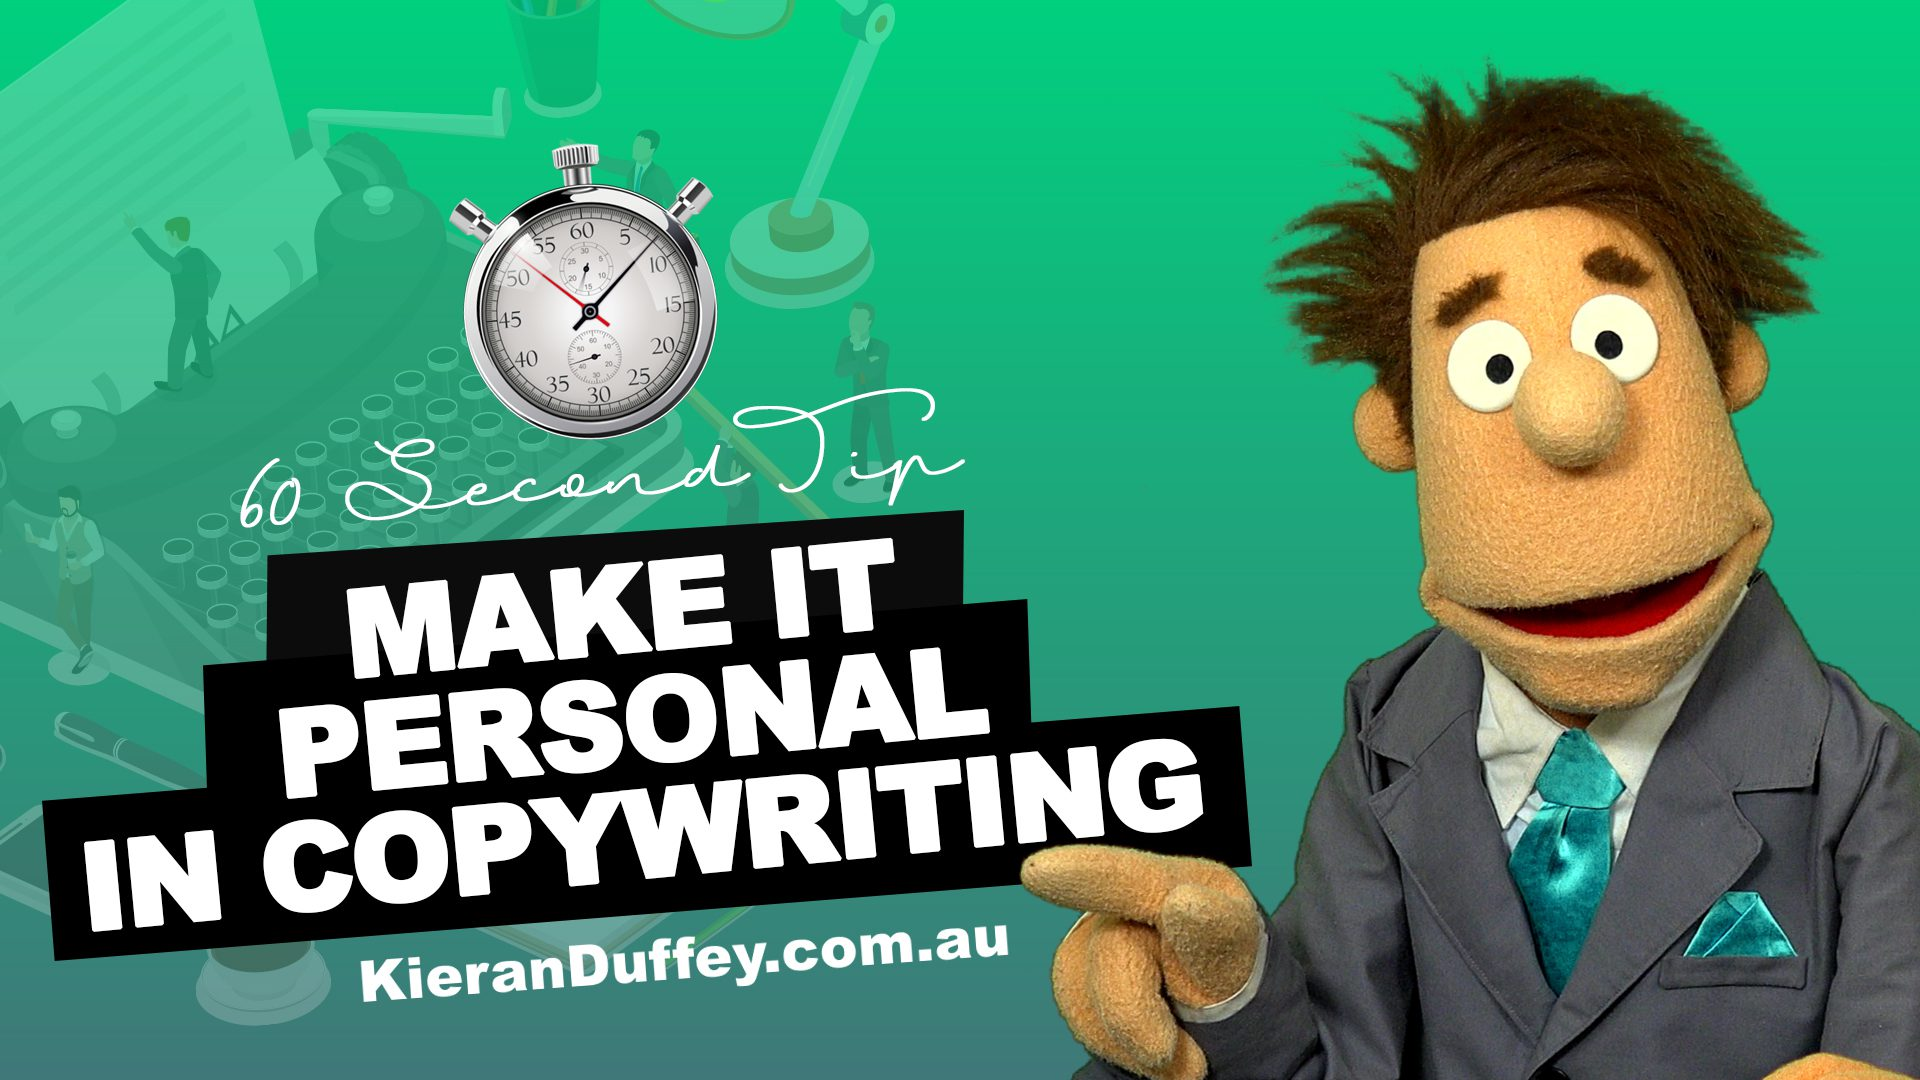 Video explaining the need to make it personal in copywriting